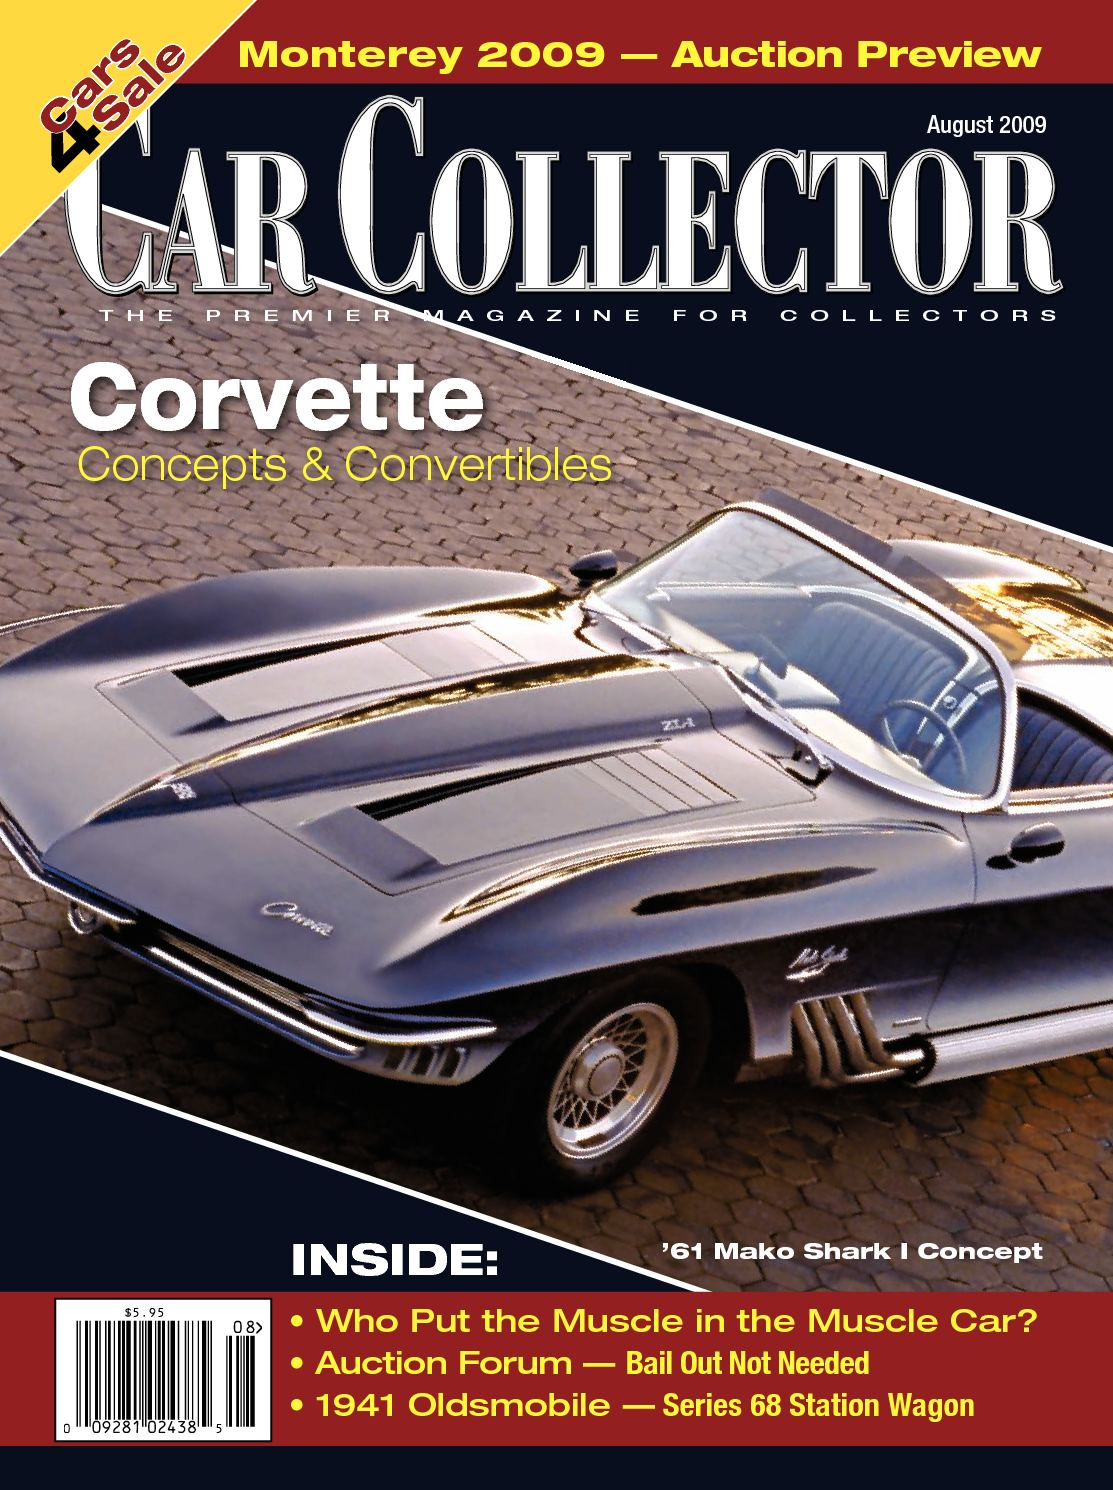 calaméo car collector august 2009Body Wiring Diagram For 1937 Cadillac 60 La Salle 50 Pontiac 6 And 8 Sedans Coaches #21